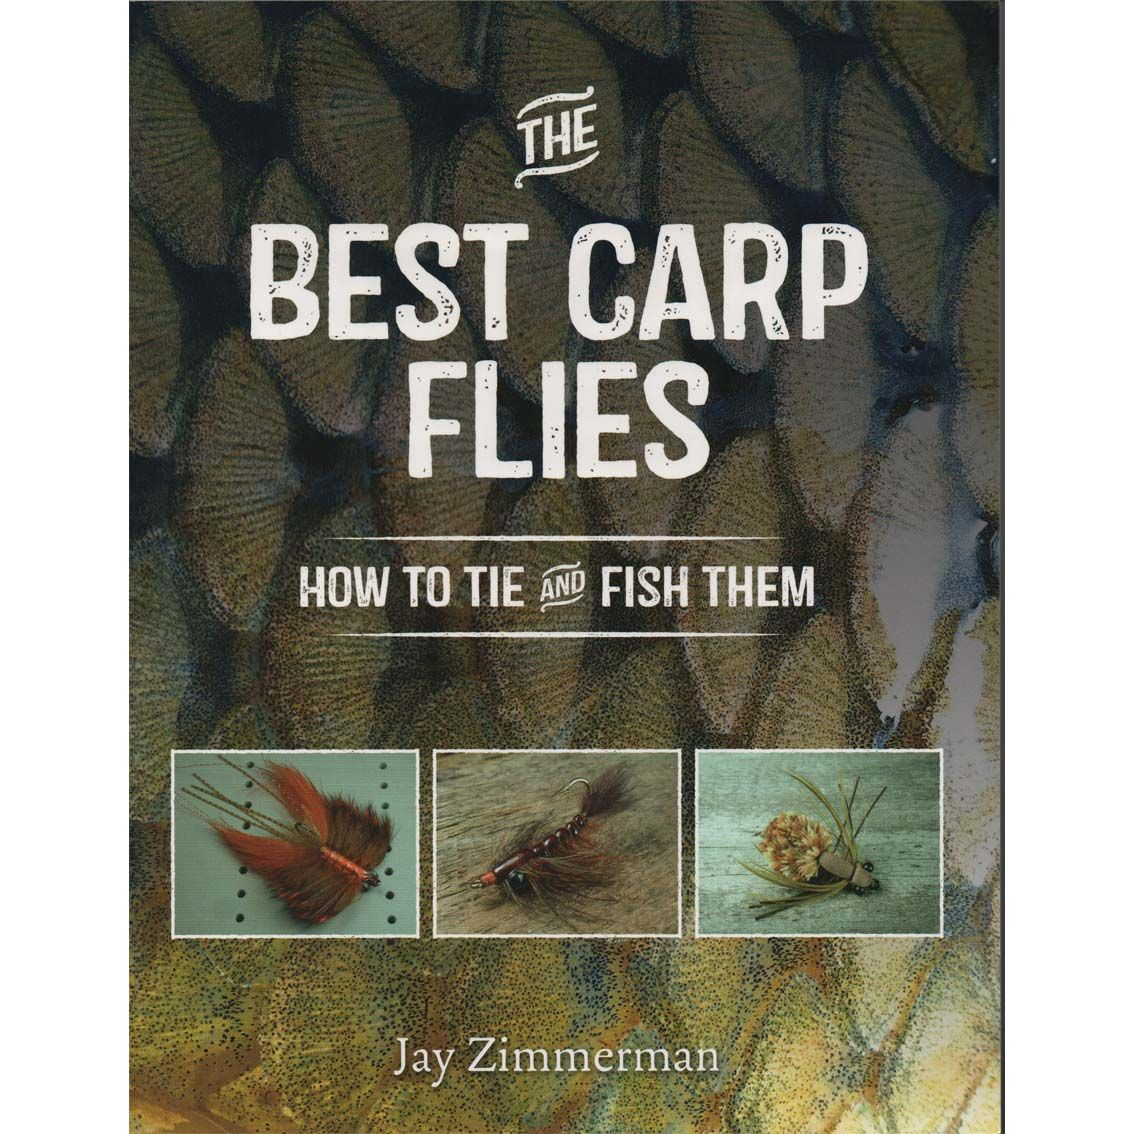 Livro The Best Carp Flies: How to Tie and Fish Them (Jay Zimmerman)